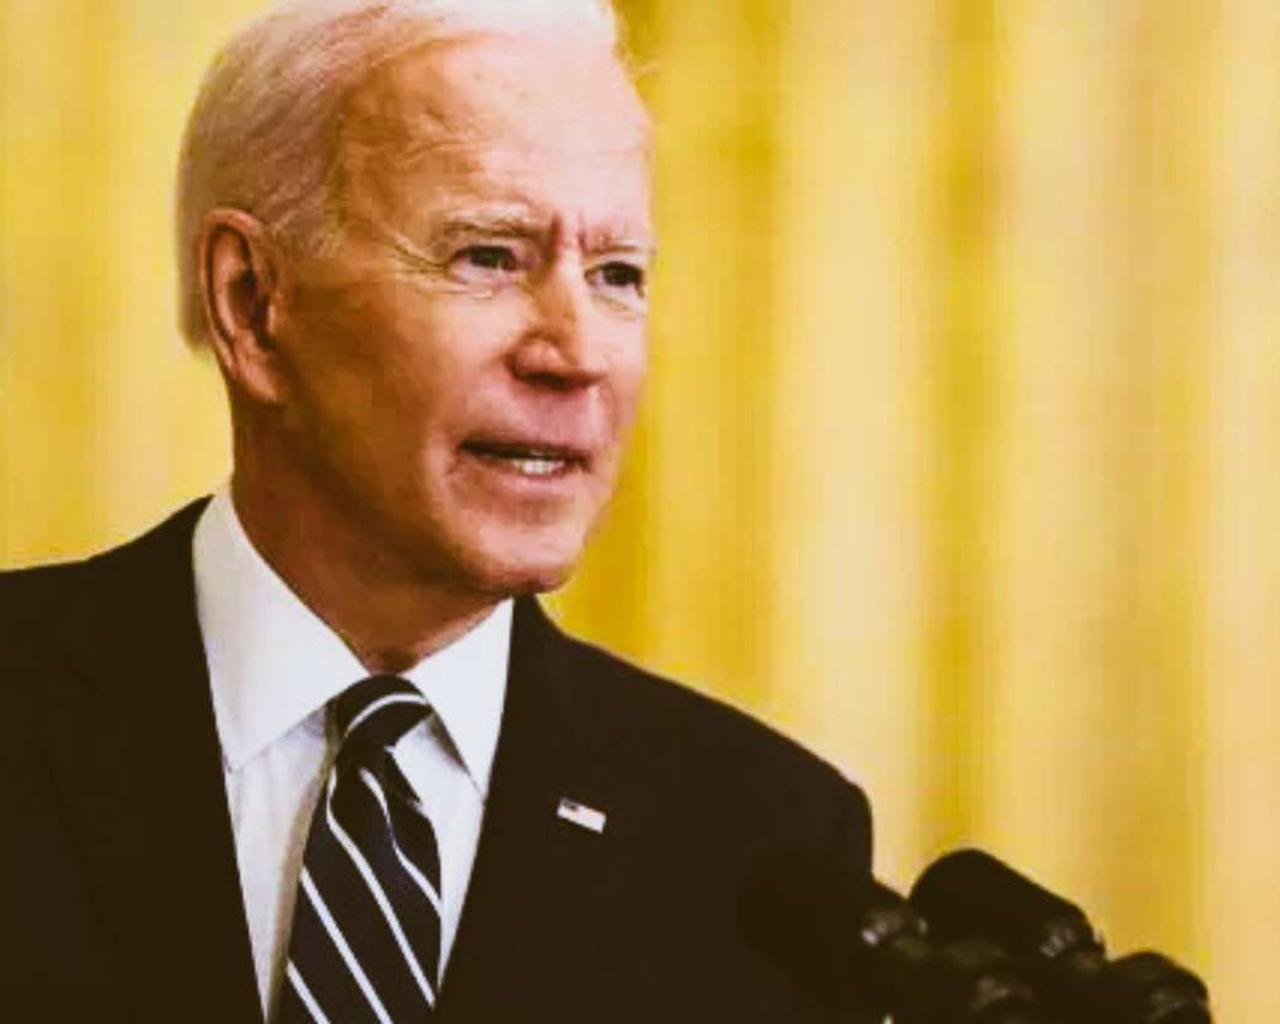 Biden invites Putin and Xi Jinping to the climate summit.